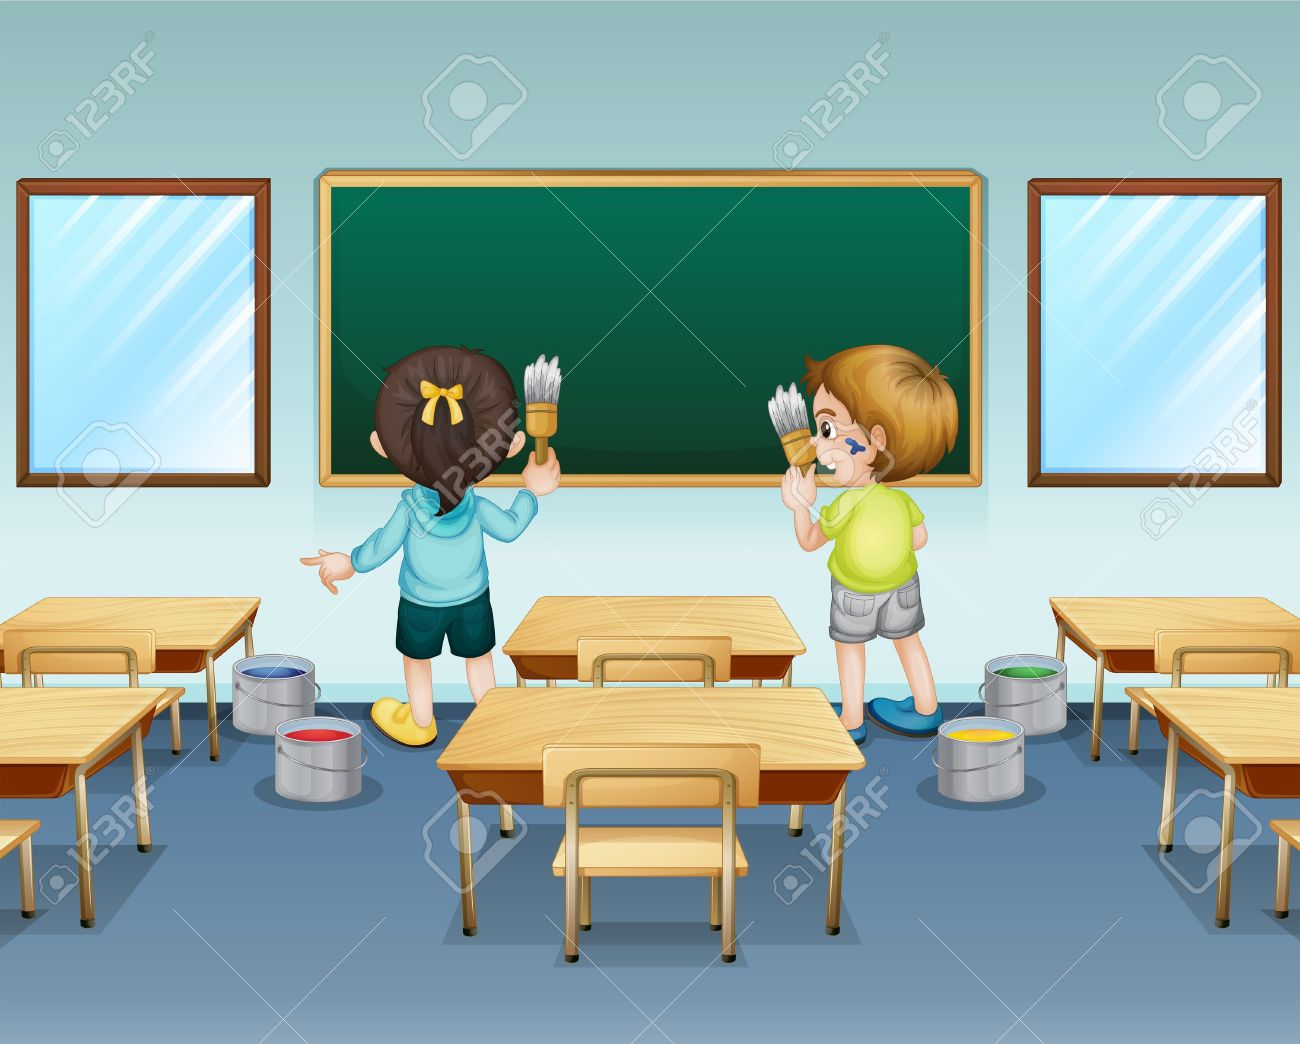 Student washing tables clipart clip art royalty free stock Classroom cleaning clipart - ClipartFest clip art royalty free stock